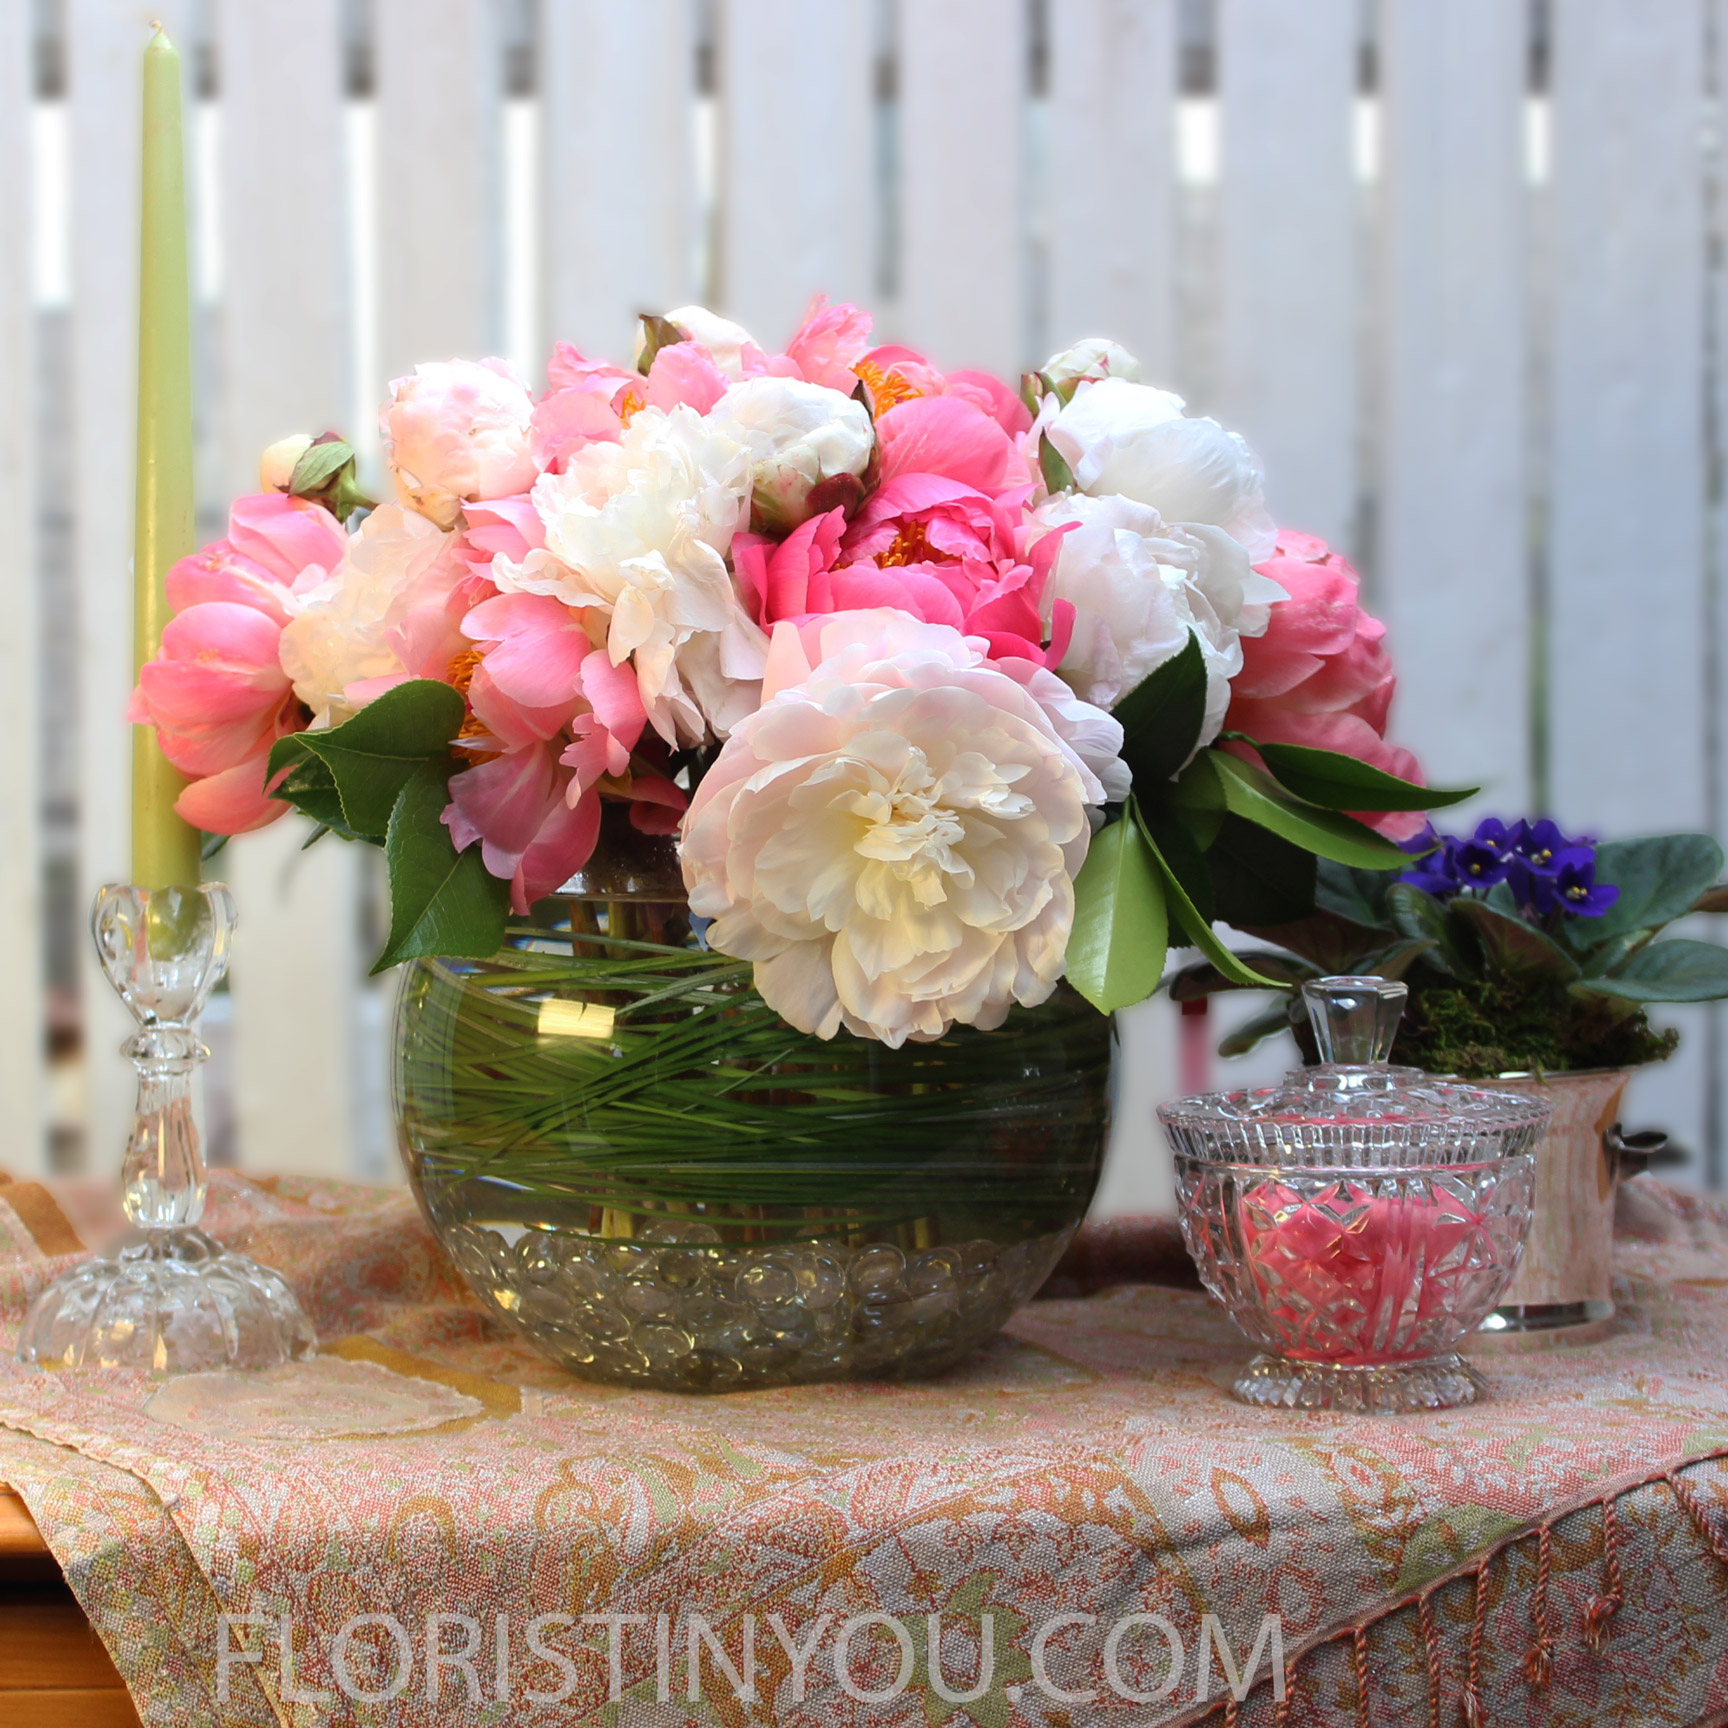 """Beautiful Spring Centerpiece...AhhhPeonies                     Normal   0           false   false   false     EN-US   JA   X-NONE                                                                                                                                                                                                                                                                                                                                                                              /* Style Definitions */ table.MsoNormalTable {mso-style-name:""""Table Normal""""; mso-tstyle-rowband-size:0; mso-tstyle-colband-size:0; mso-style-noshow:yes; mso-style-priority:99; mso-style-parent:""""""""; mso-padding-alt:0in 5.4pt 0in 5.4pt; mso-para-margin:0in; mso-para-margin-bottom:.0001pt; mso-pagination:widow-orphan; font-size:12.0pt; font-family:Cambria; mso-ascii-font-family:Cambria; mso-ascii-theme-font:minor-latin; mso-hansi-font-family:Cambria; mso-hansi-theme-font:minor-latin;}"""